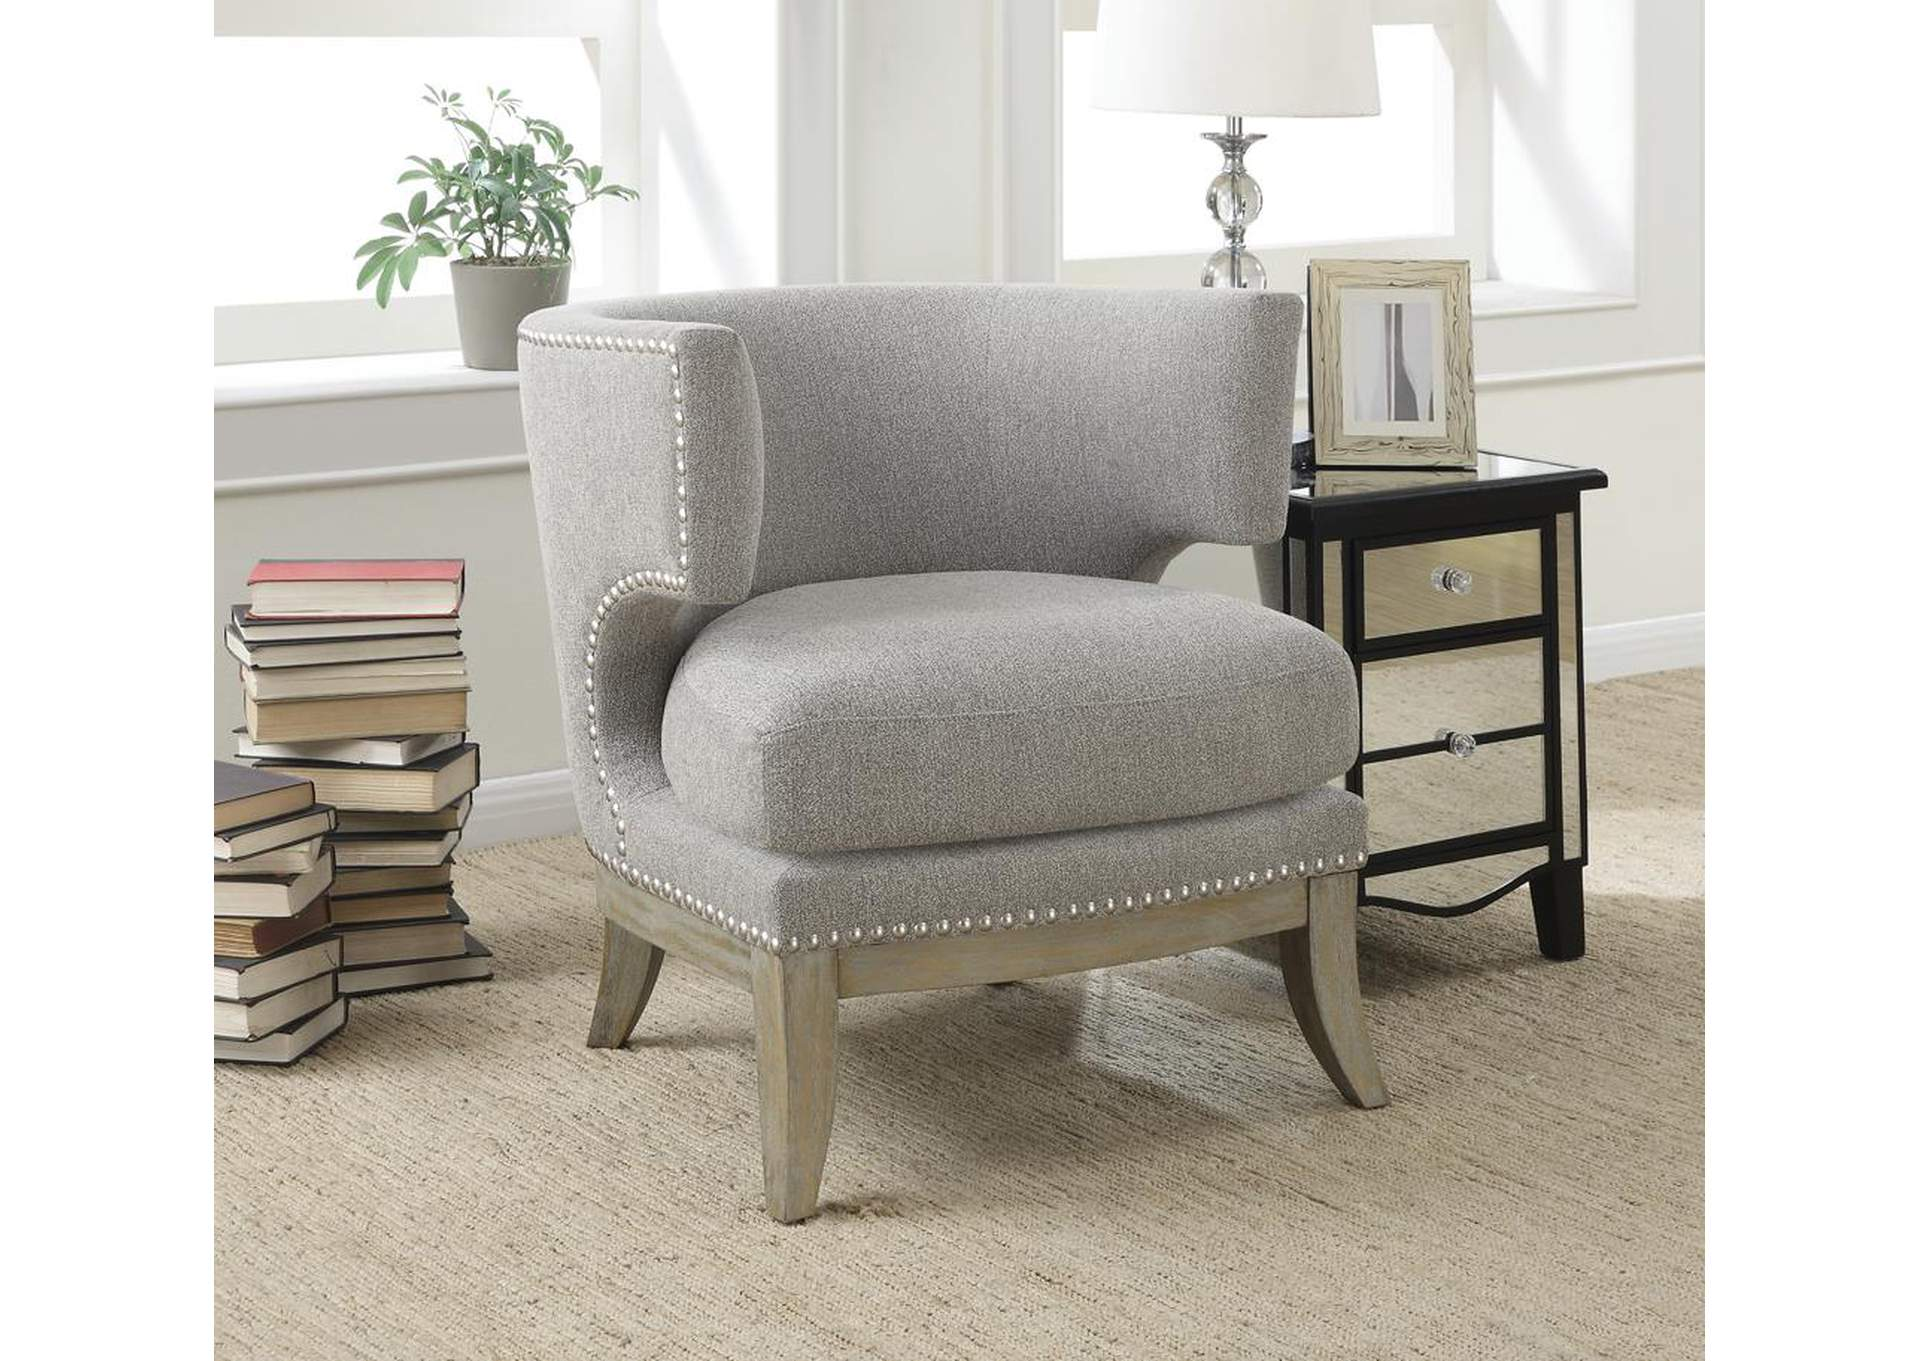 Weathered Grey Transitional Grey Exposed Wood Accent Chair,Coaster Furniture